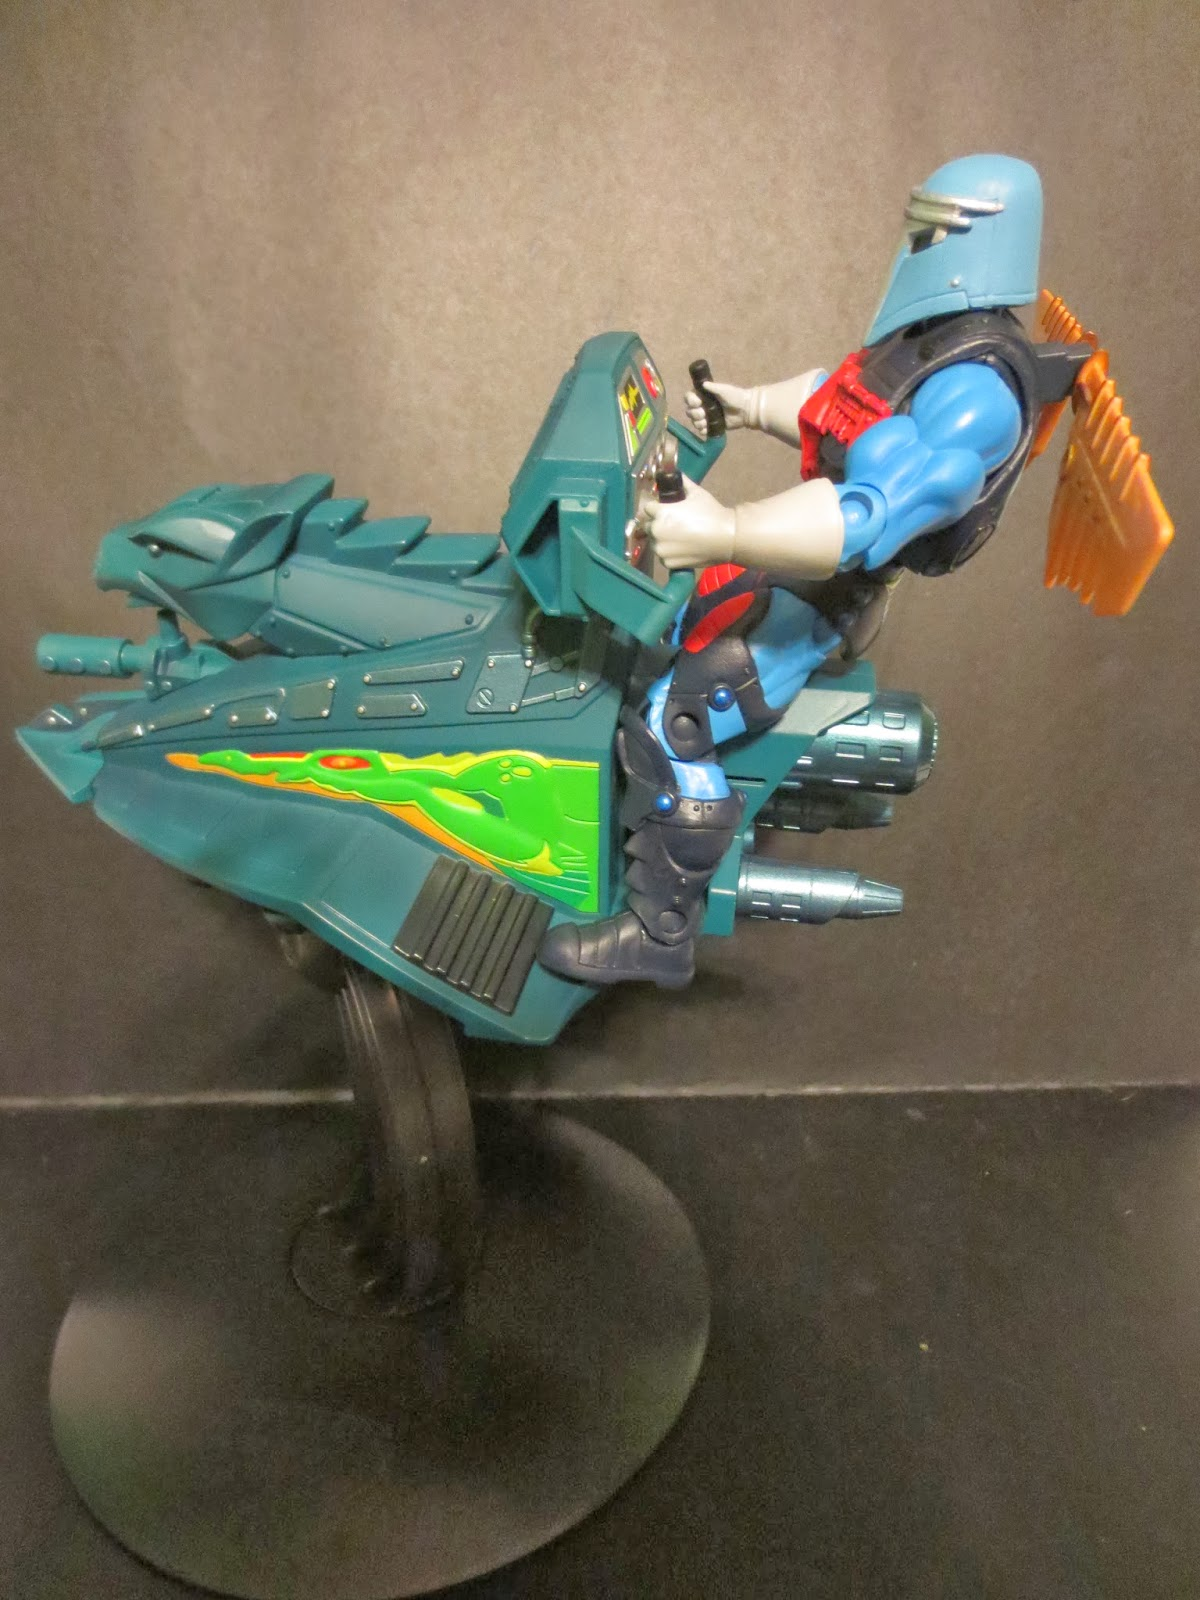 The Epic Review: Action Figure Review: Sky High with Jet